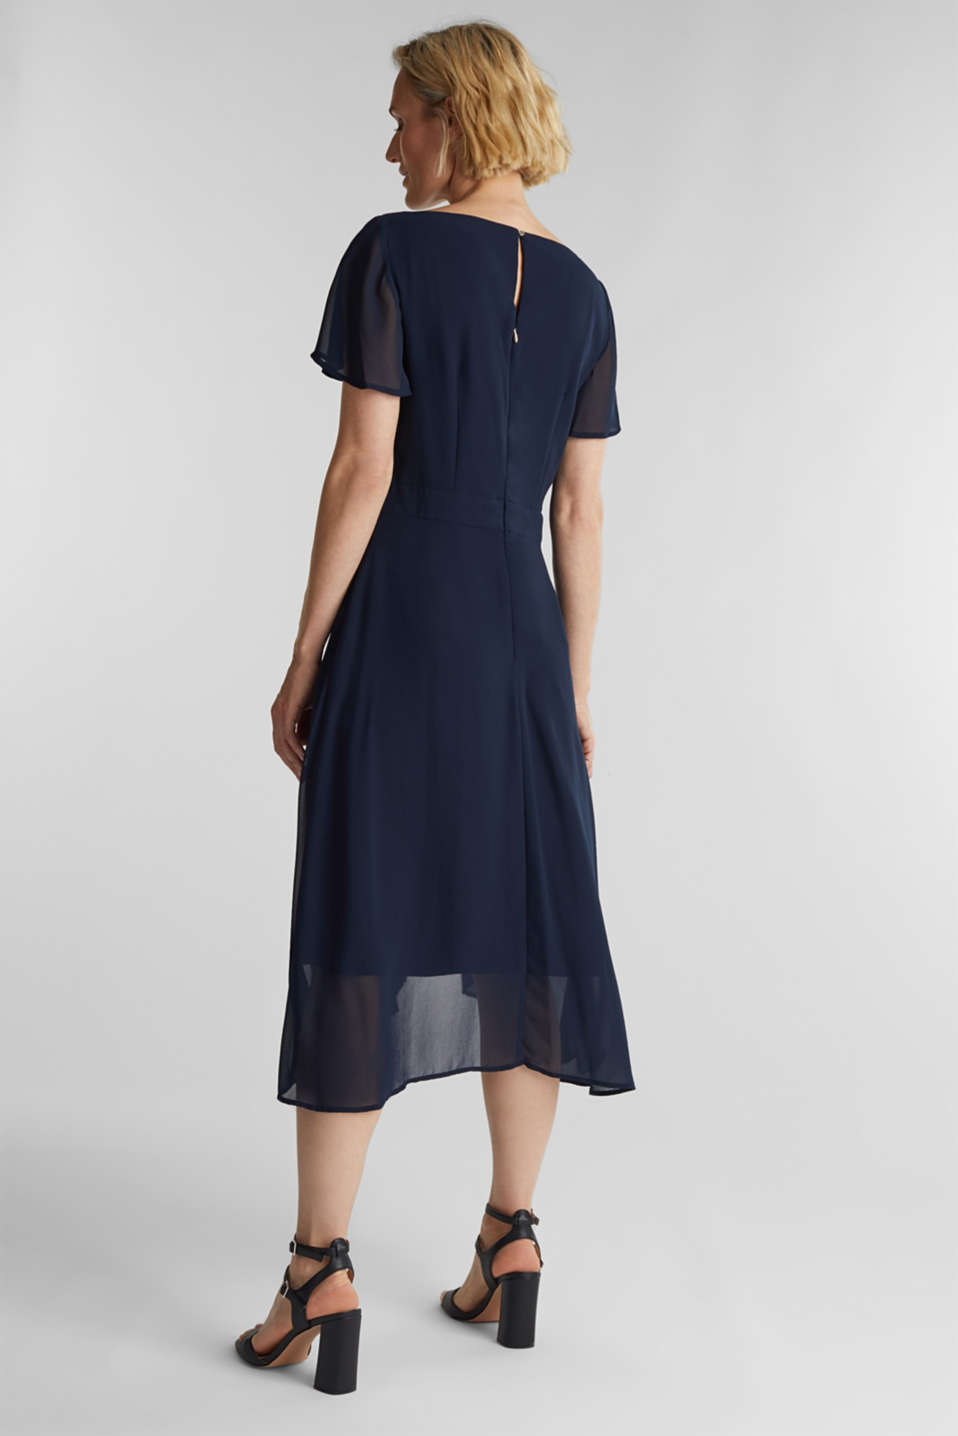 Midi dress in crêpe chiffon, NAVY, detail image number 2